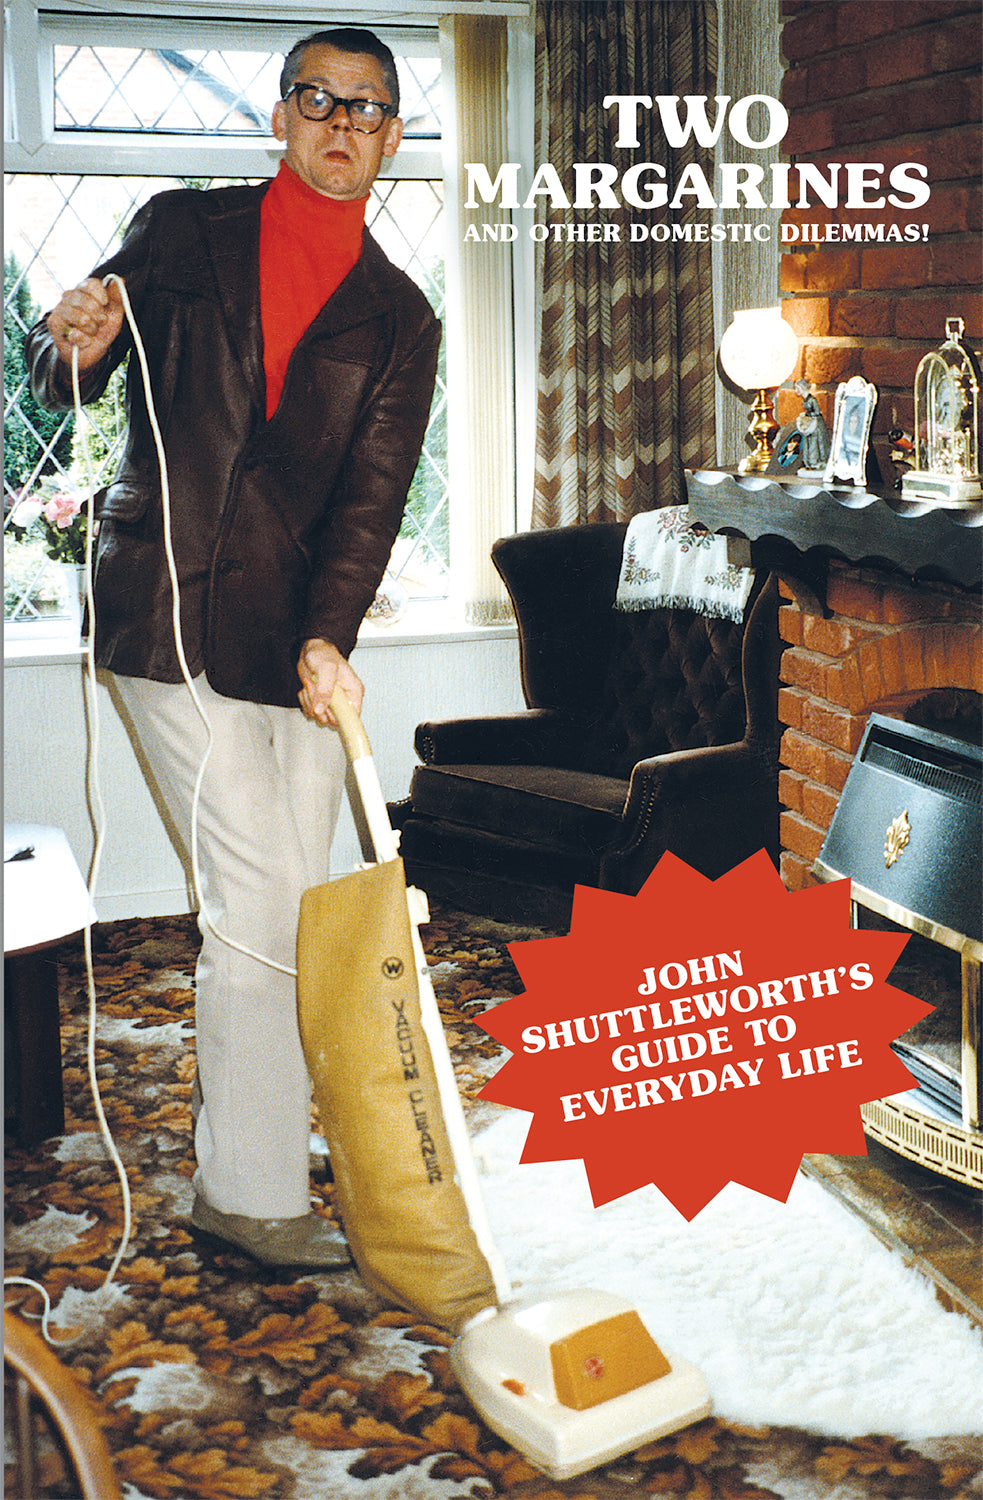 Two Margarines and Other Domestic Dilemmas! John Shuttleworth's Guide to Everyday Life